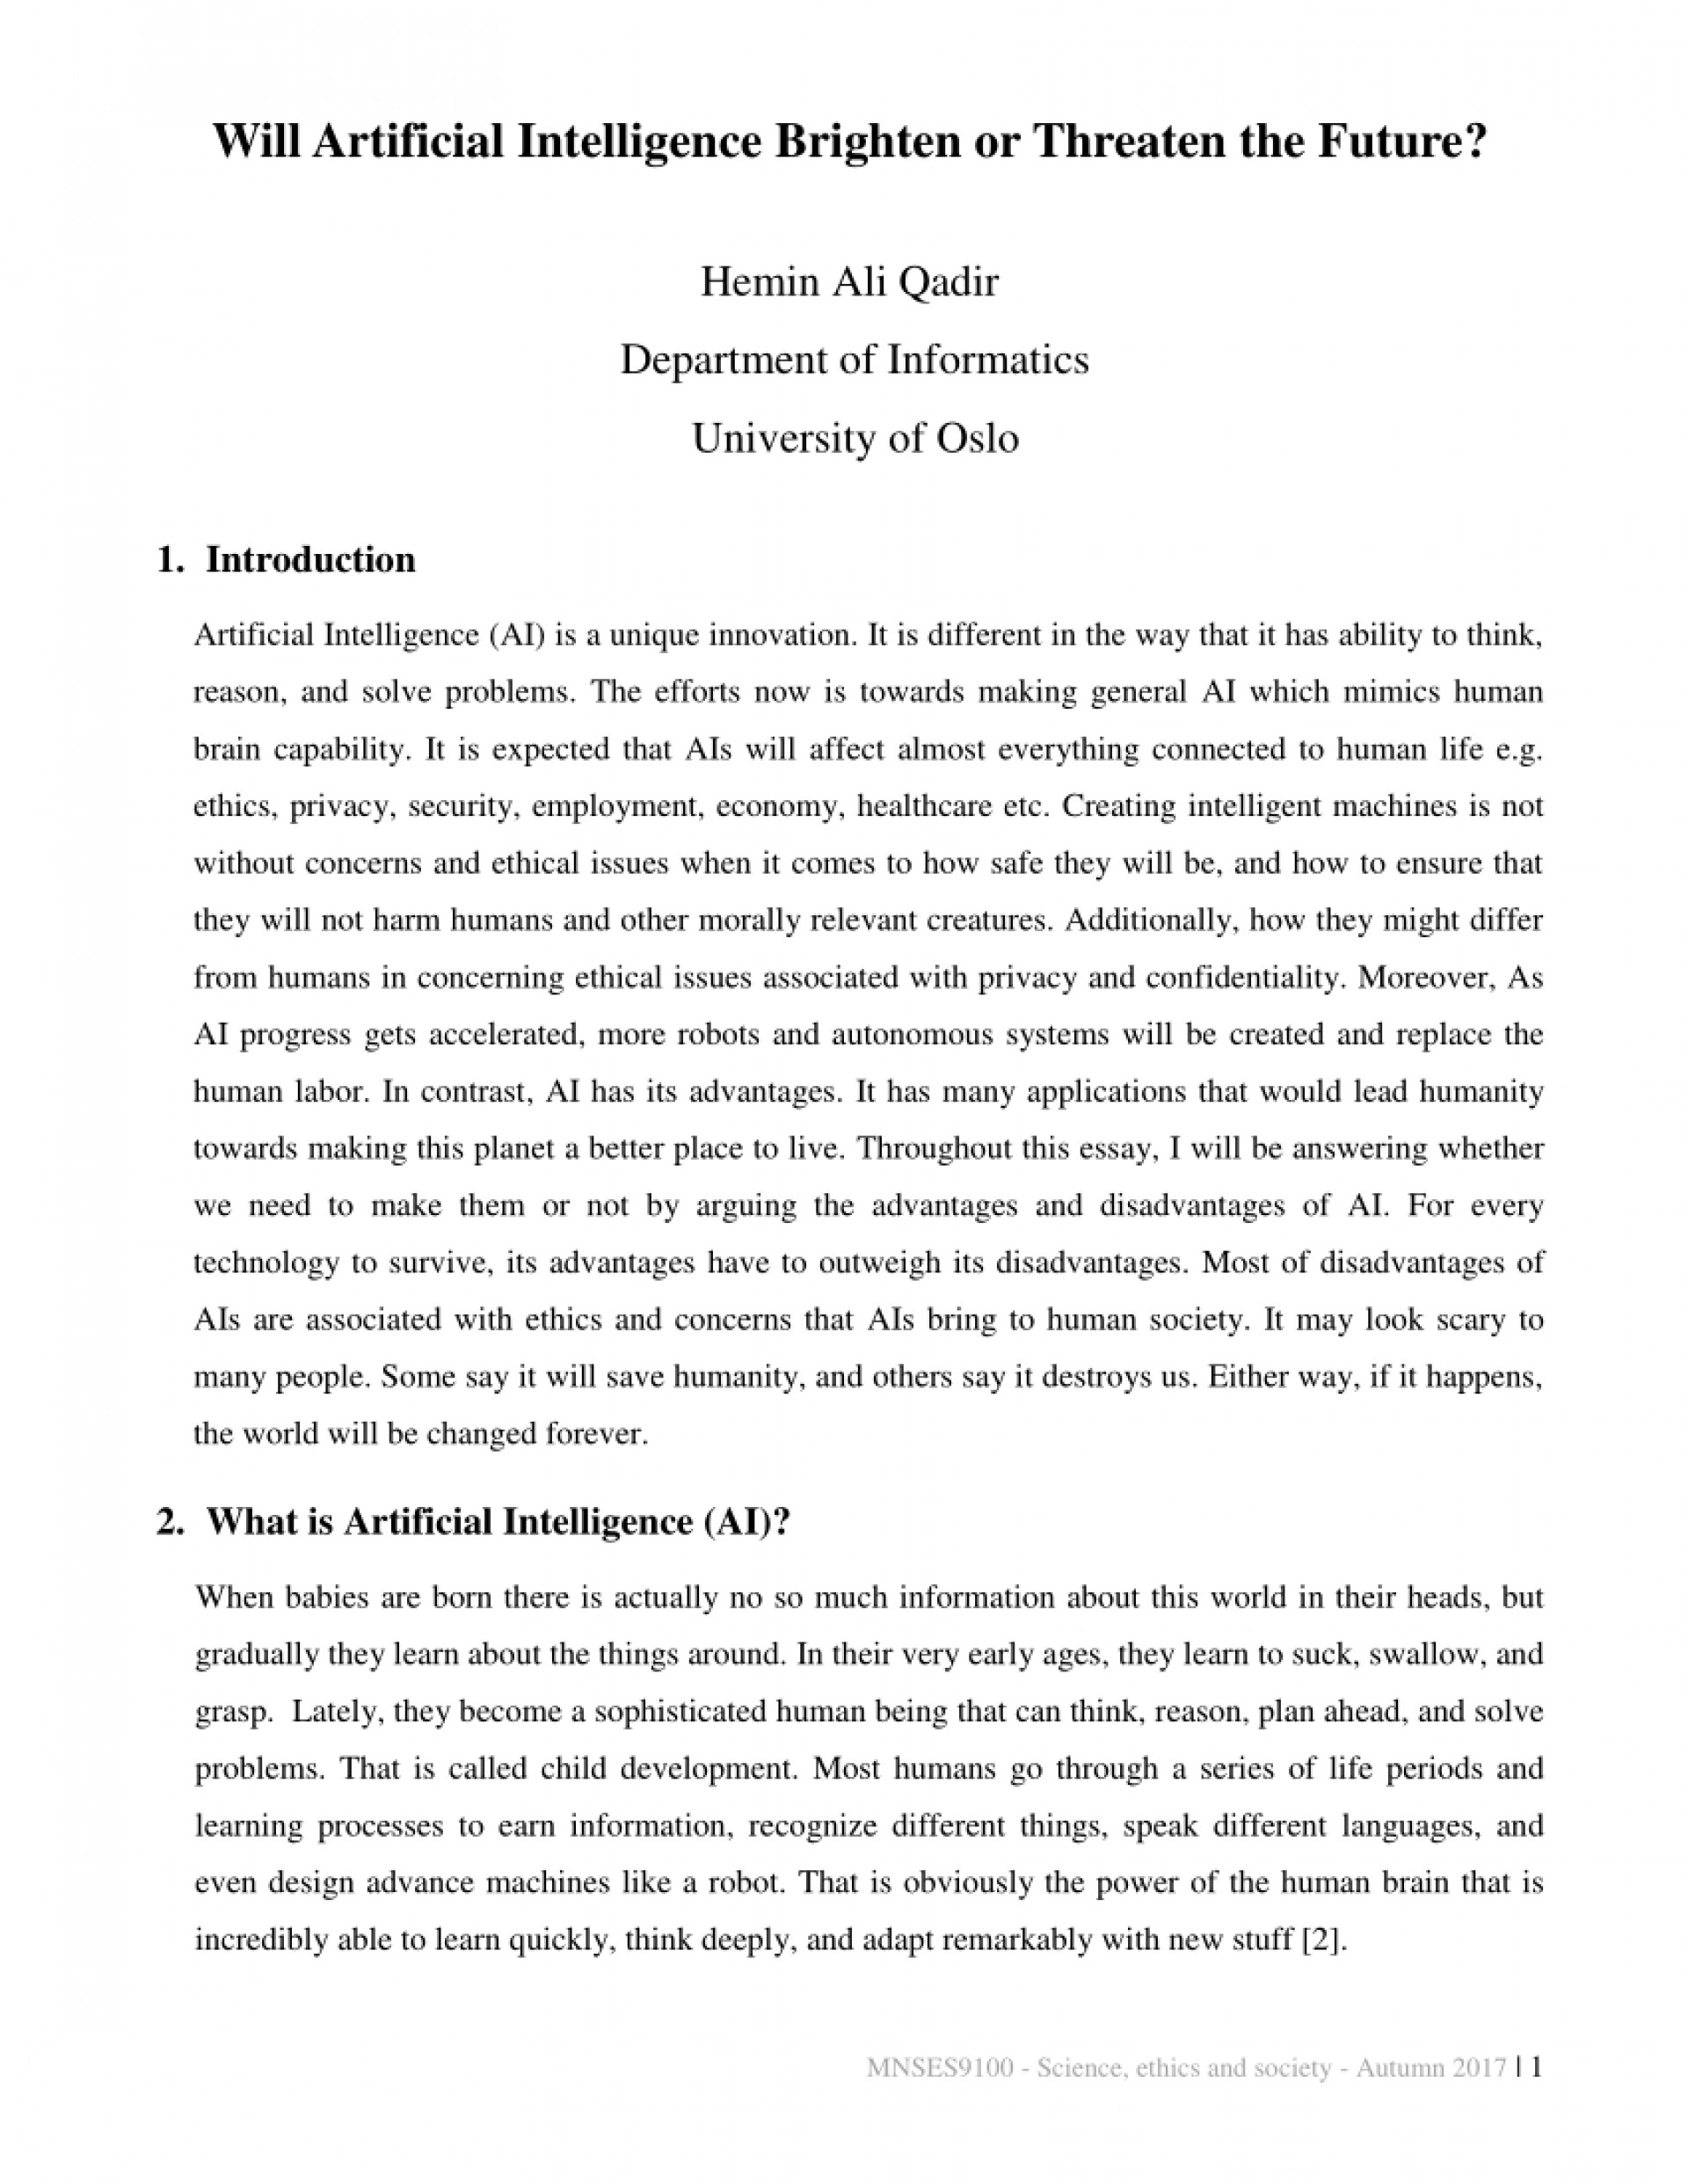 005 Artificial Intelligence Essay Largepreview Striking Argumentative Outline Paper Presentation Topics Pdf 1920